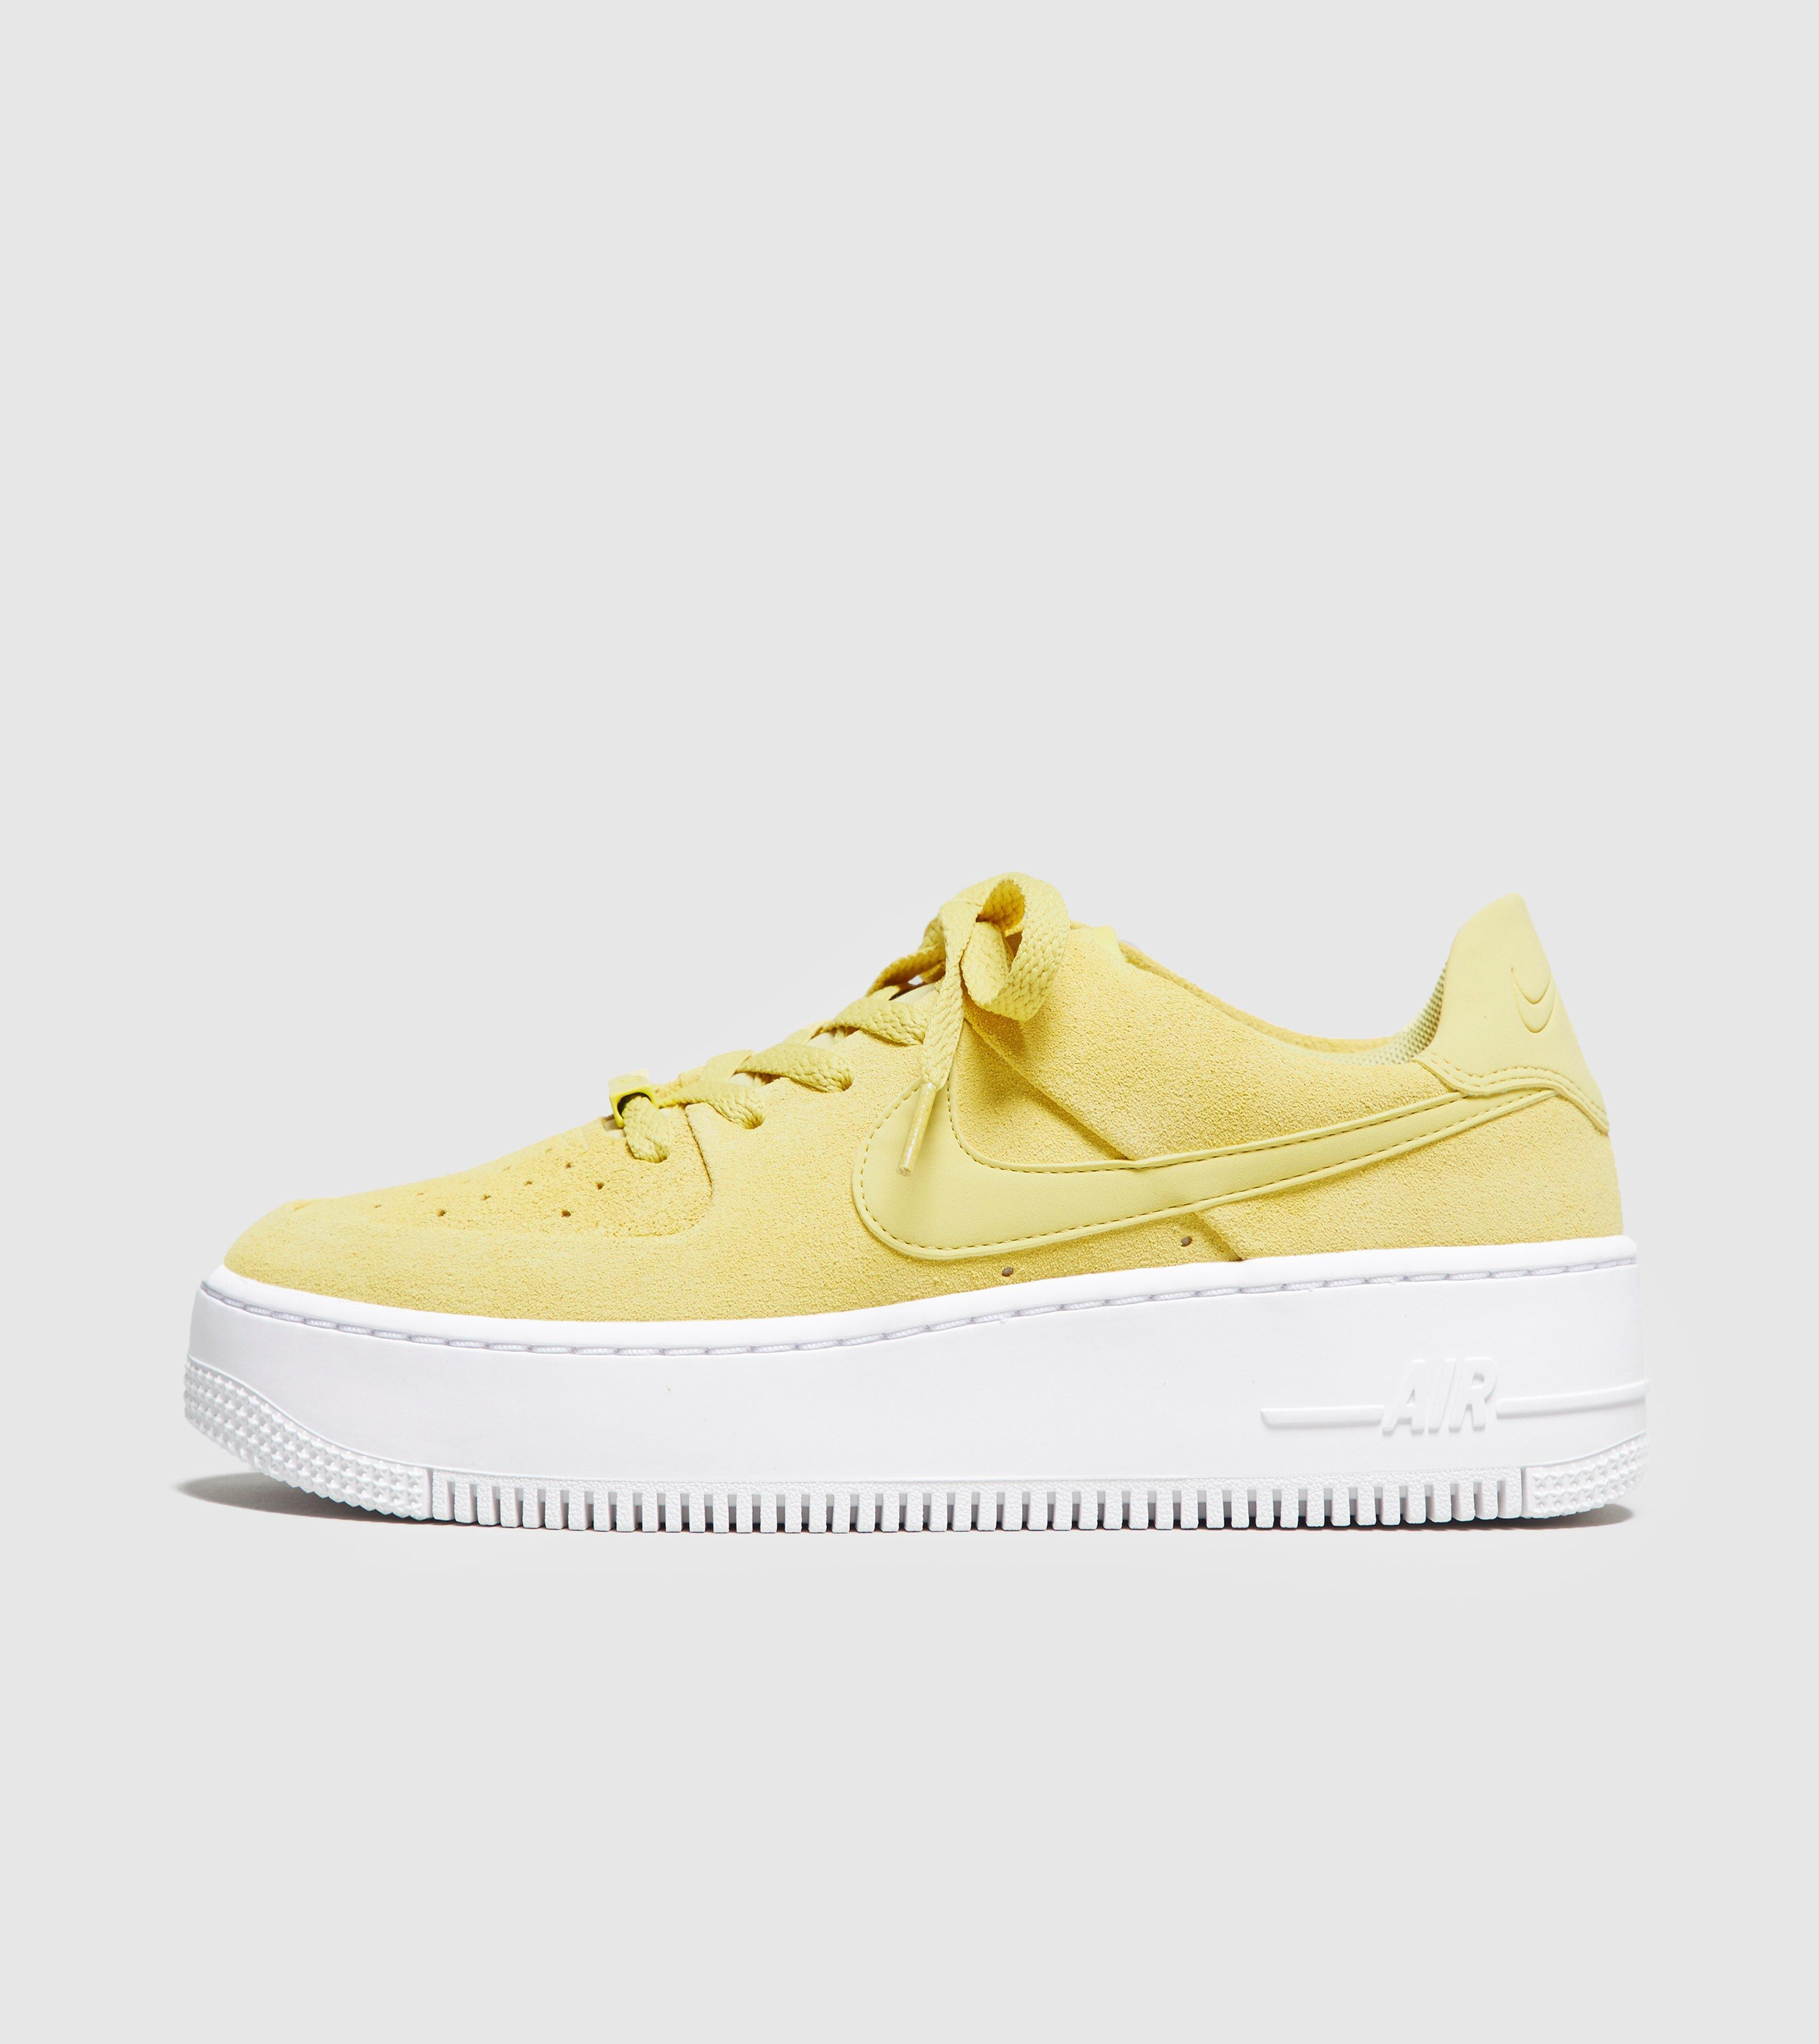 79f8f673d05 Nike Yellow Air Force 1 Sage Low Women's